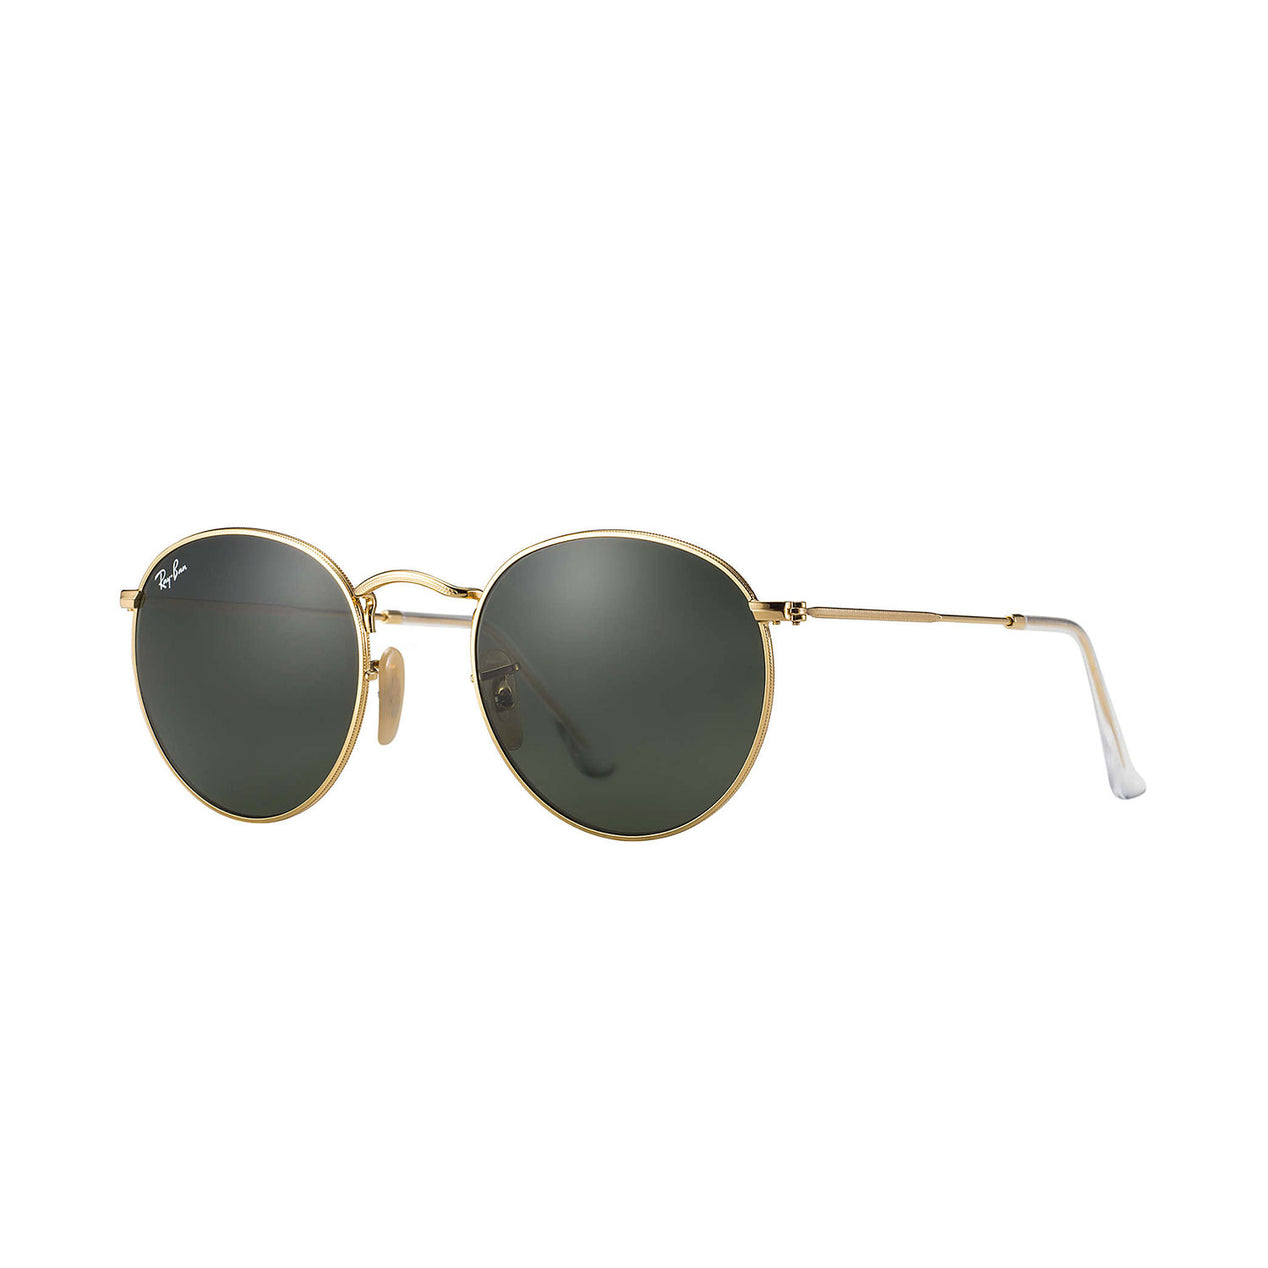 596fe1685d Ray Ban Round Metal - Gold Frame - Green Classic G-15 Lens ...